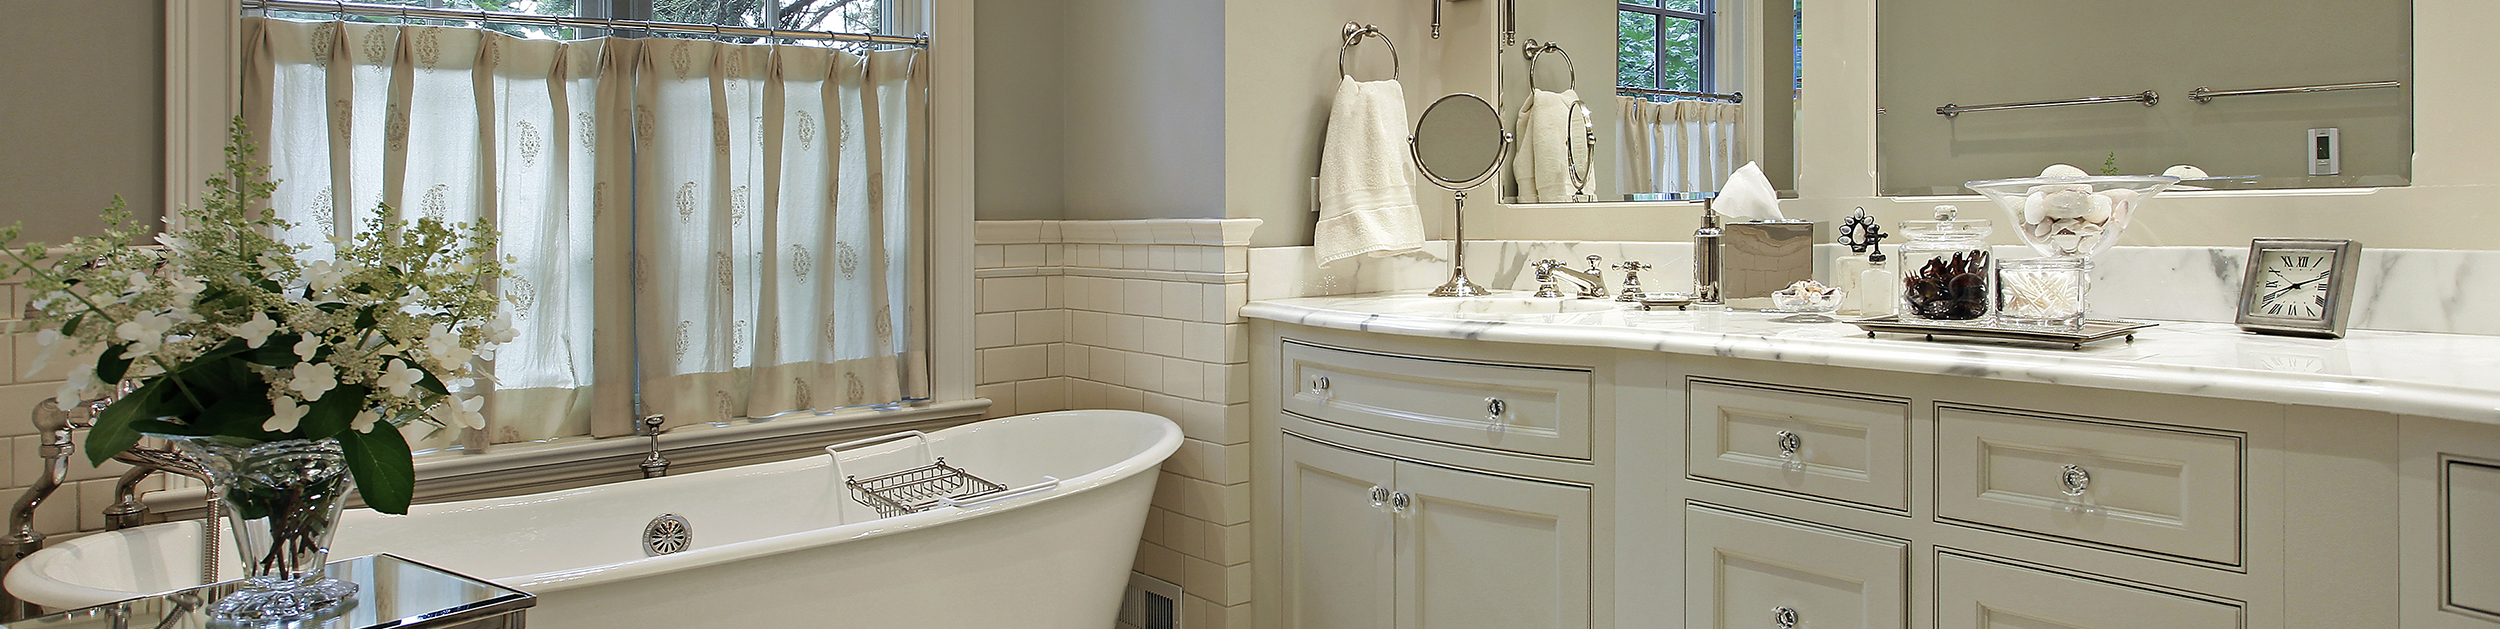 view of a bathroom with white tub, counters and counter top